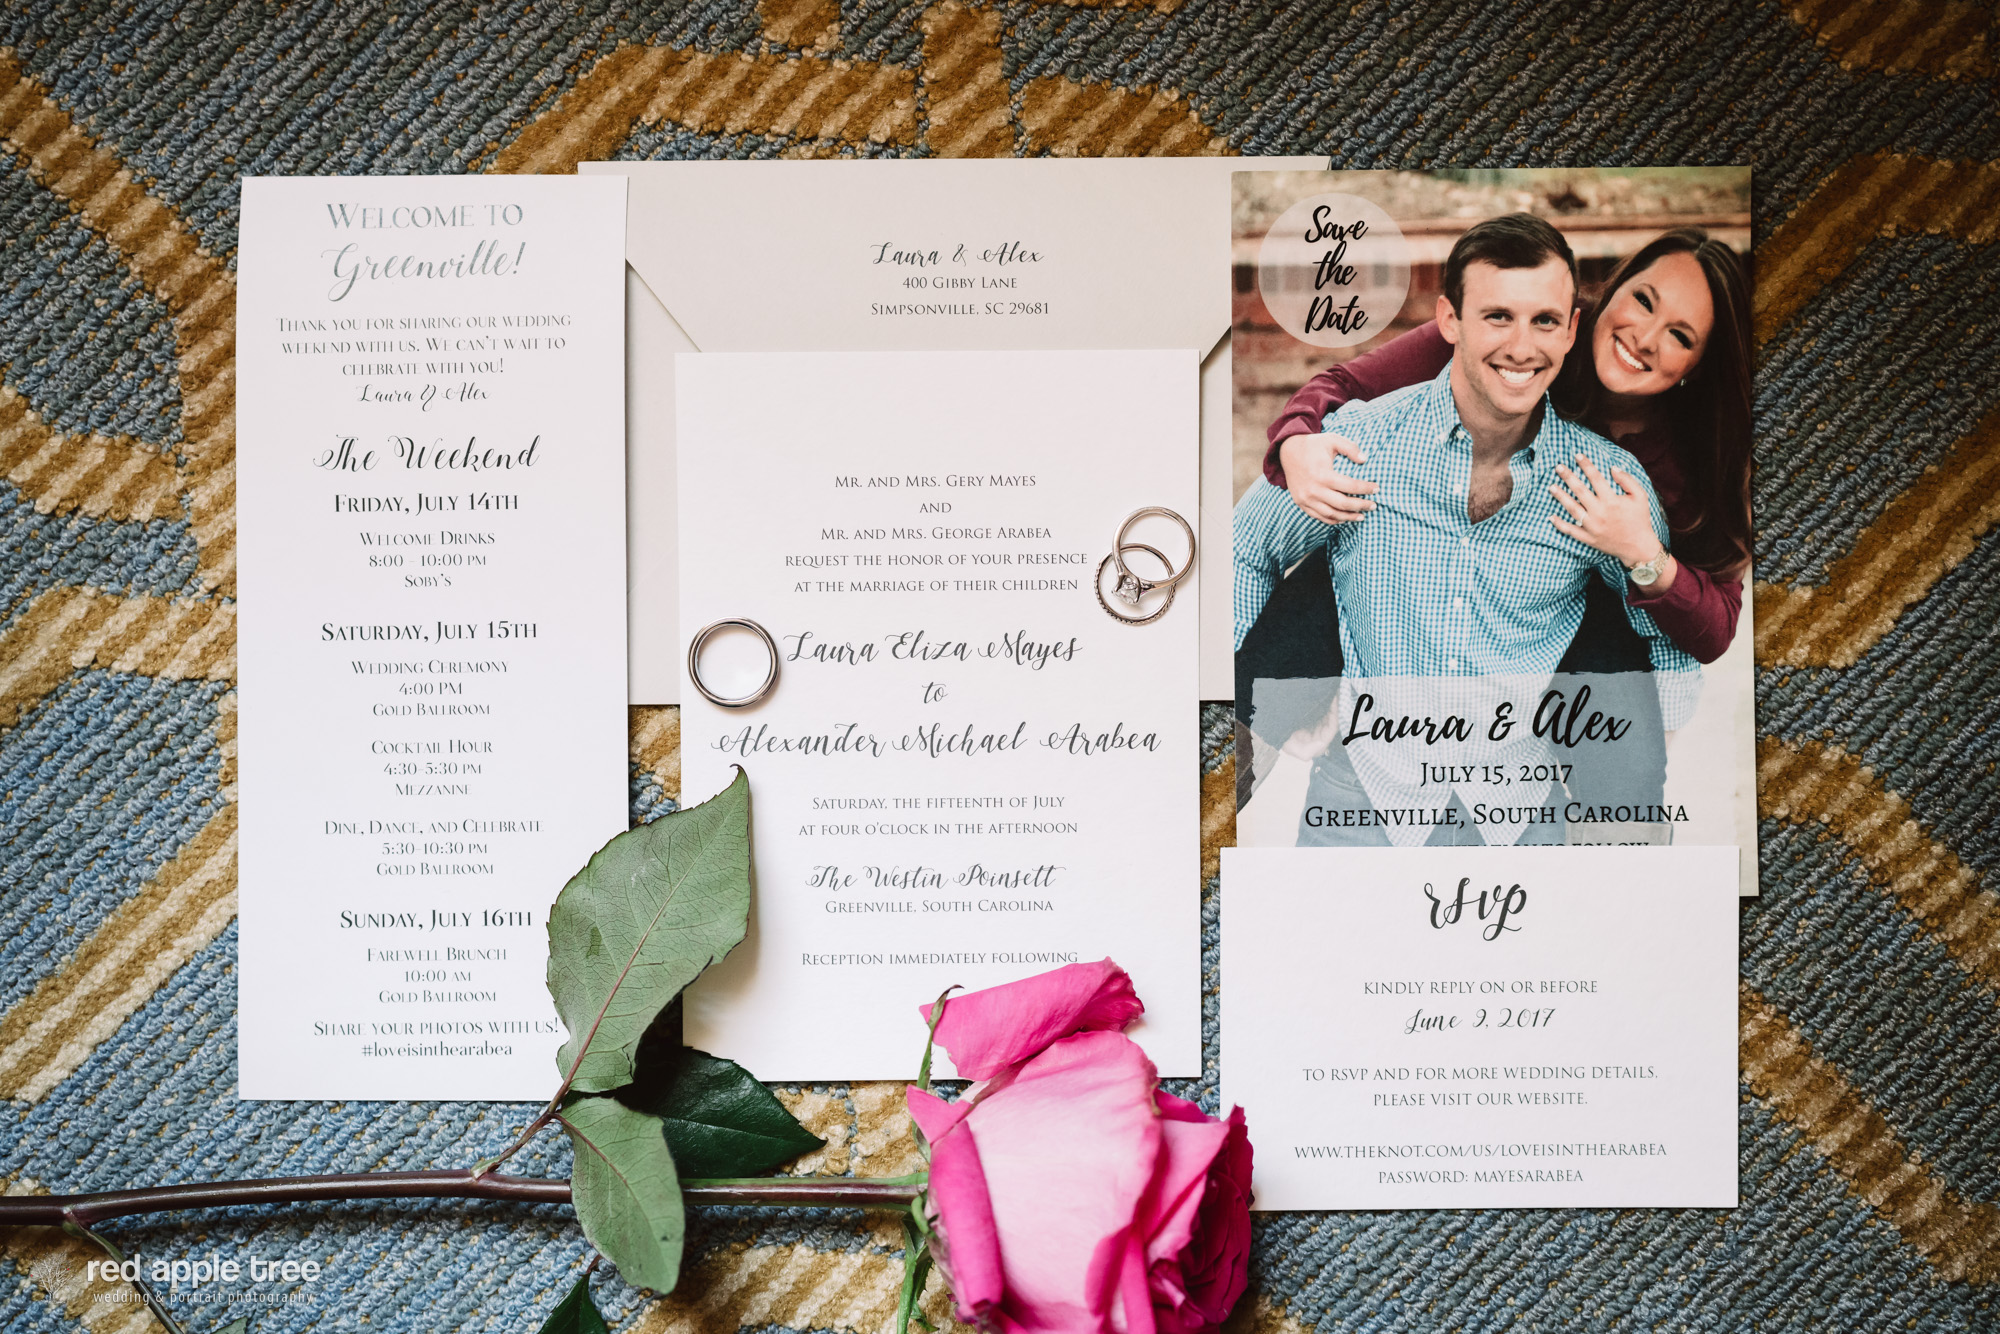 Love this wedding stationary layout! Formal, but FRESH!